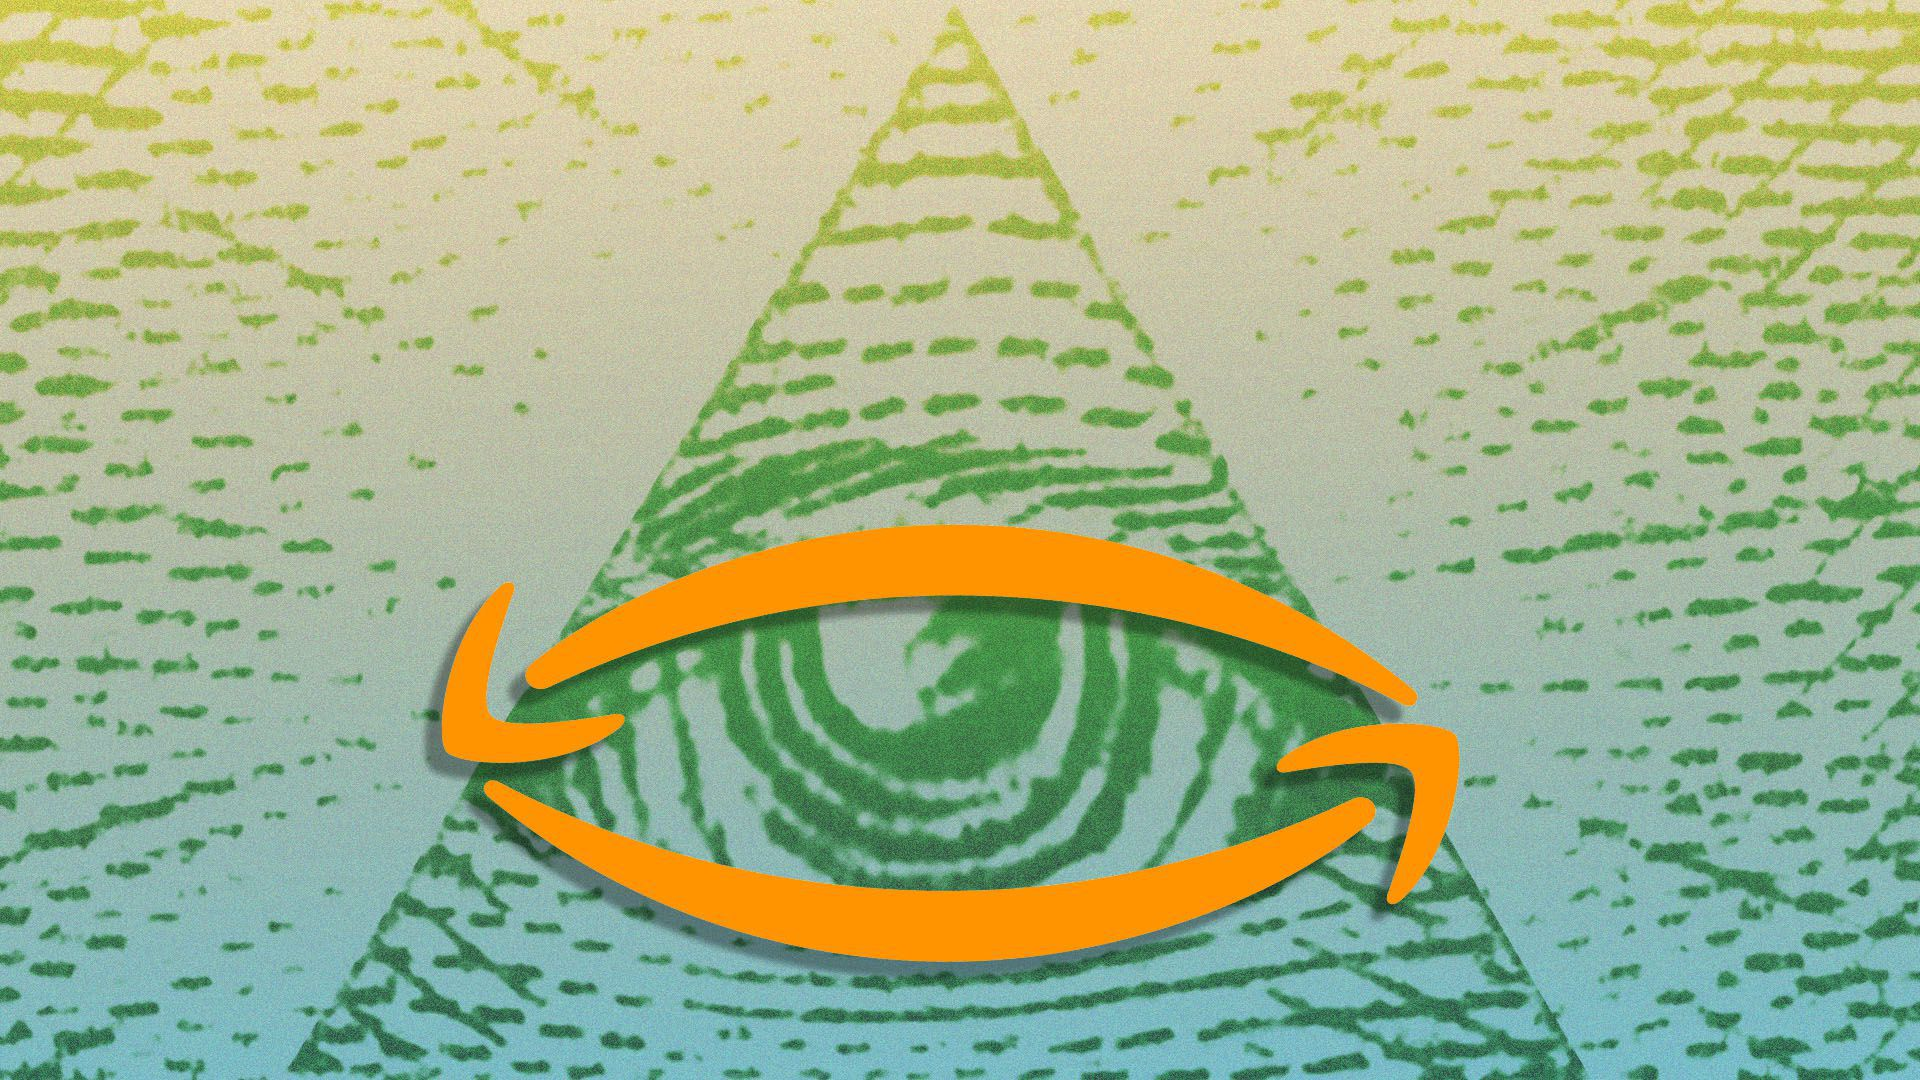 An Illustration of the Amazon logo over the Eye of Providence